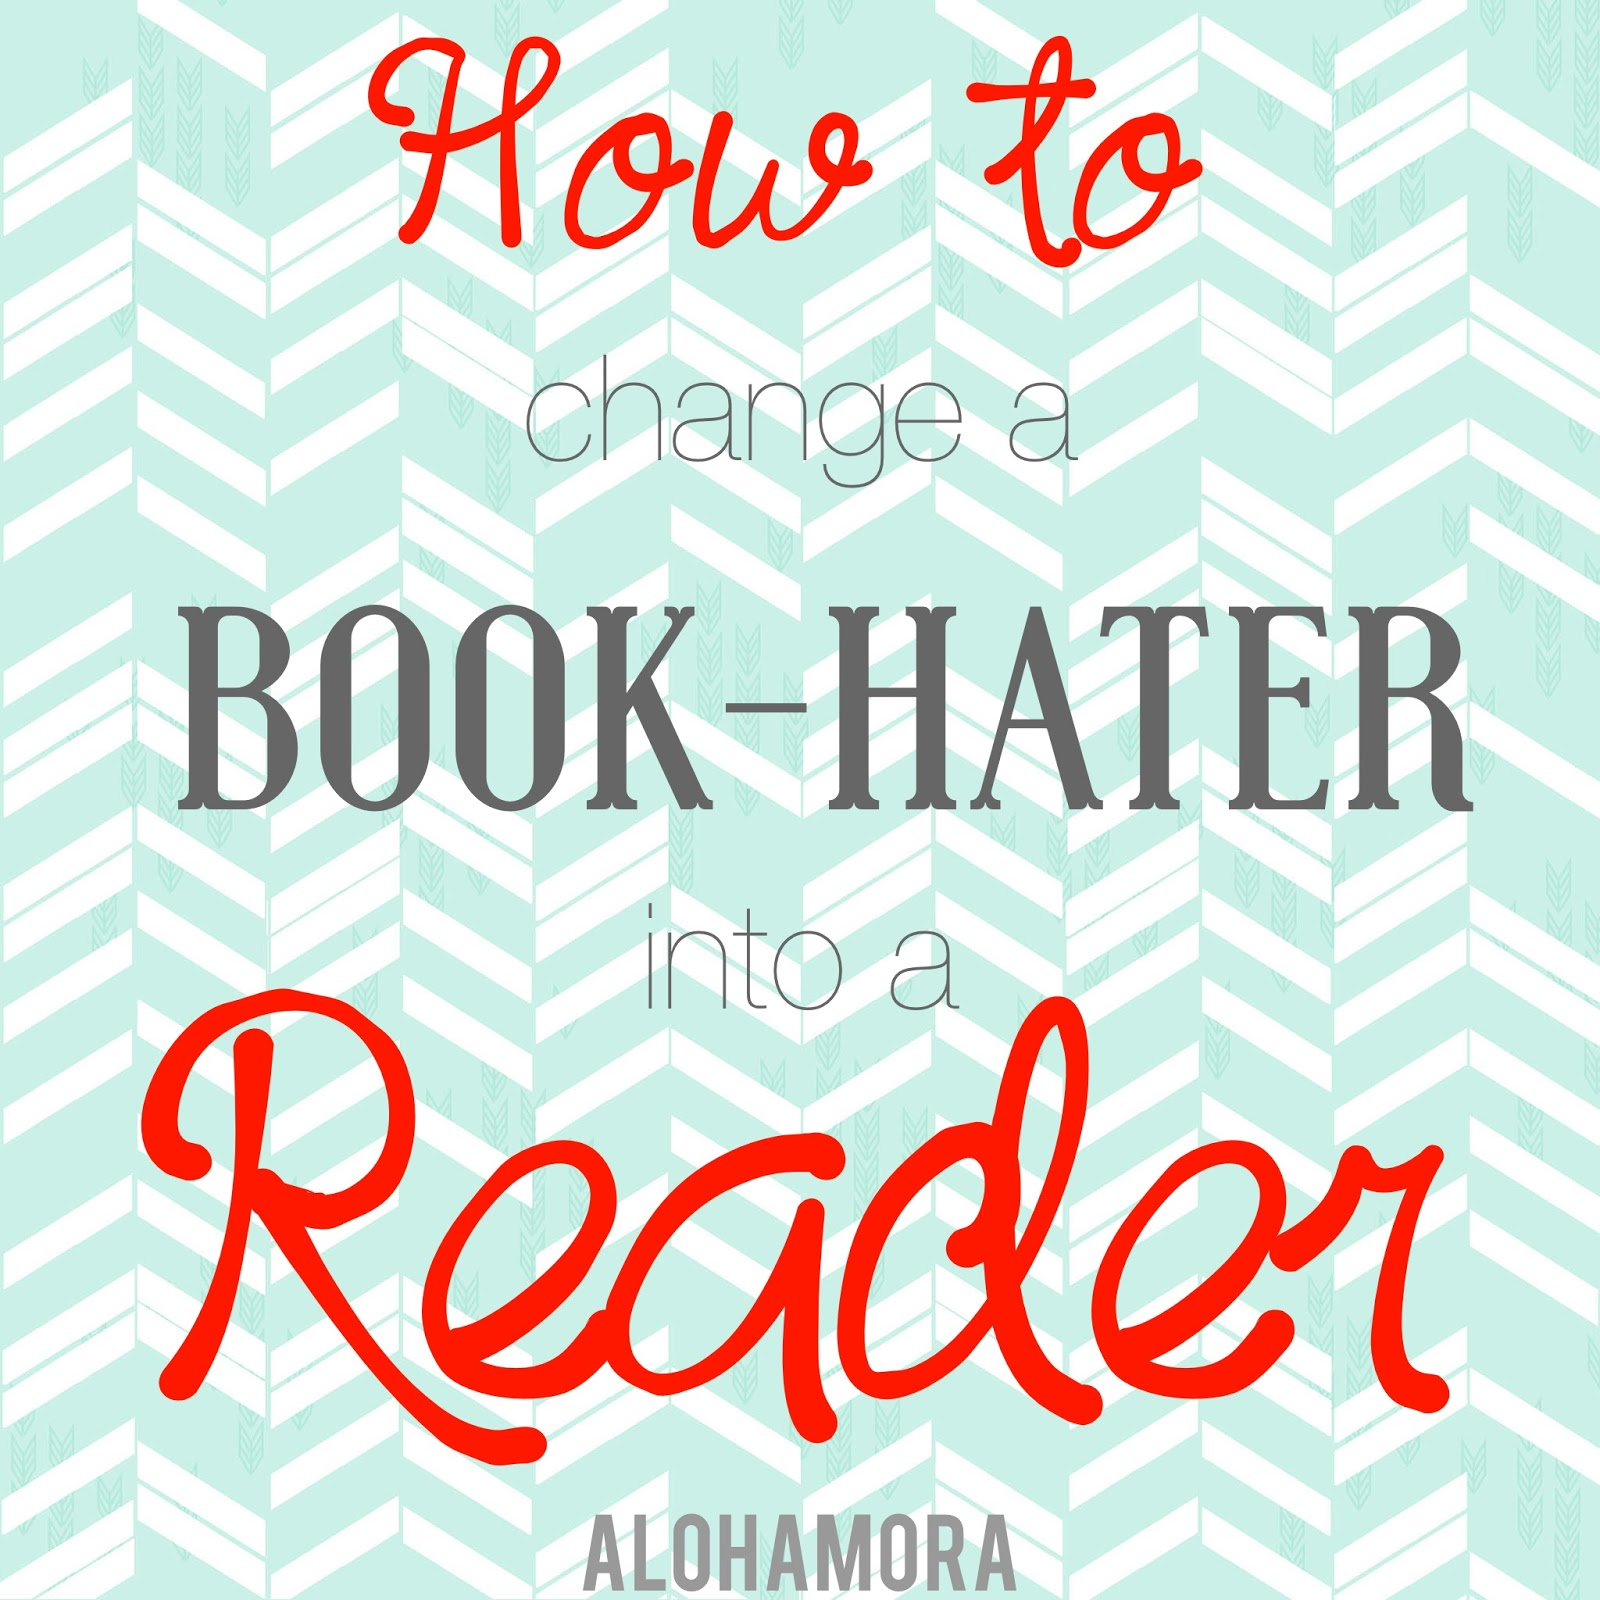 How to change or turn a book hater aka reluctant reader into a reader.  These 7 steps can help a parent, teacher, librarian, aunt, uncle, grandparent help any child or reluctant reader of any age.   It's all about reading; there are too many benefits for reading. Alohamora Open a Book http://alohamoraopenabook.blogspot.com/ Hate Love